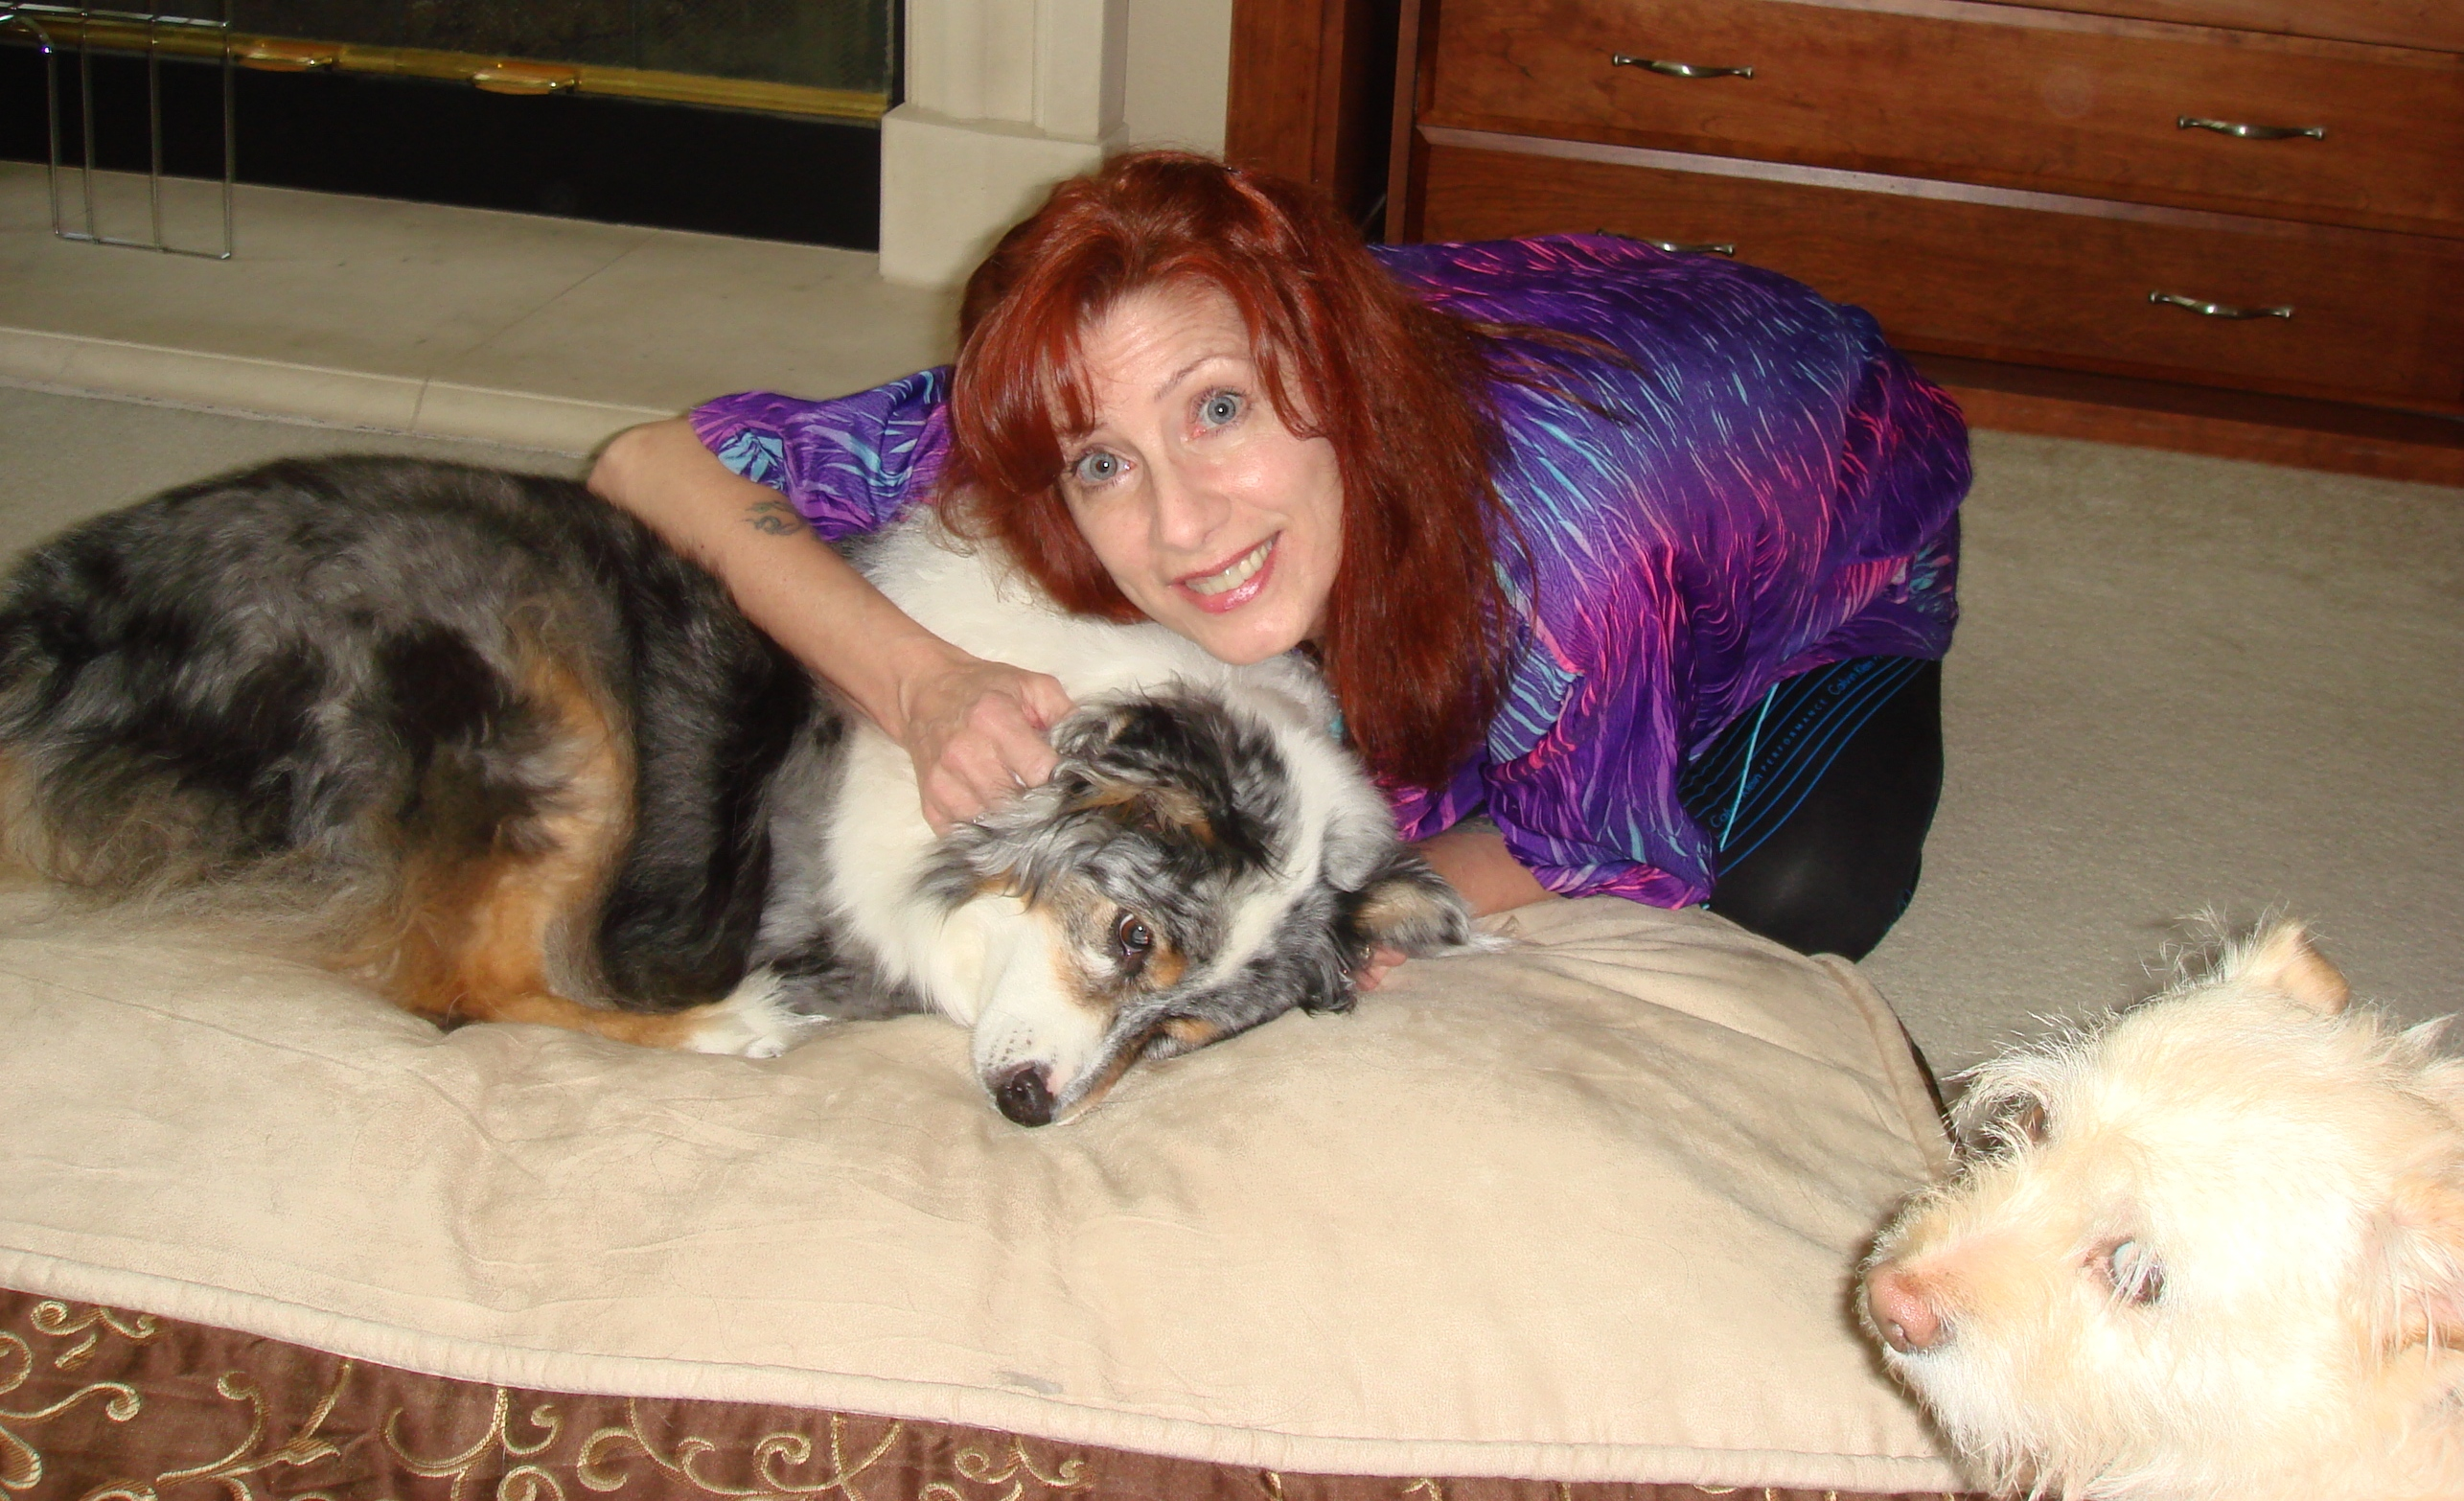 Katie, she's enjoying this and look there's Chloe sneaking in. Katie is a beautiful & fun lovin' Aussie. Lovely colors.